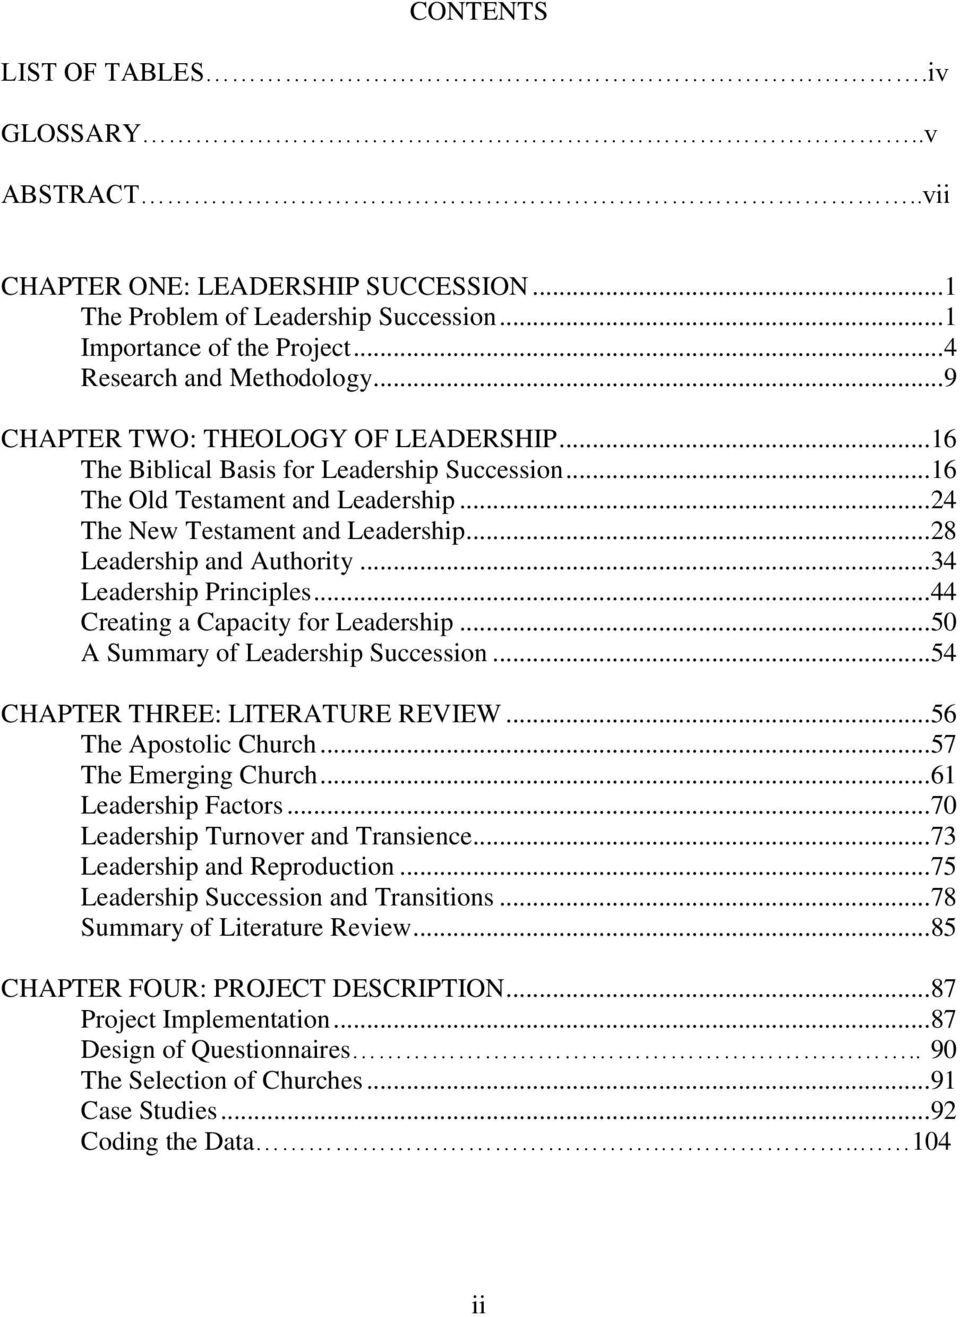 Leadership succession a contingency plan for the independent church